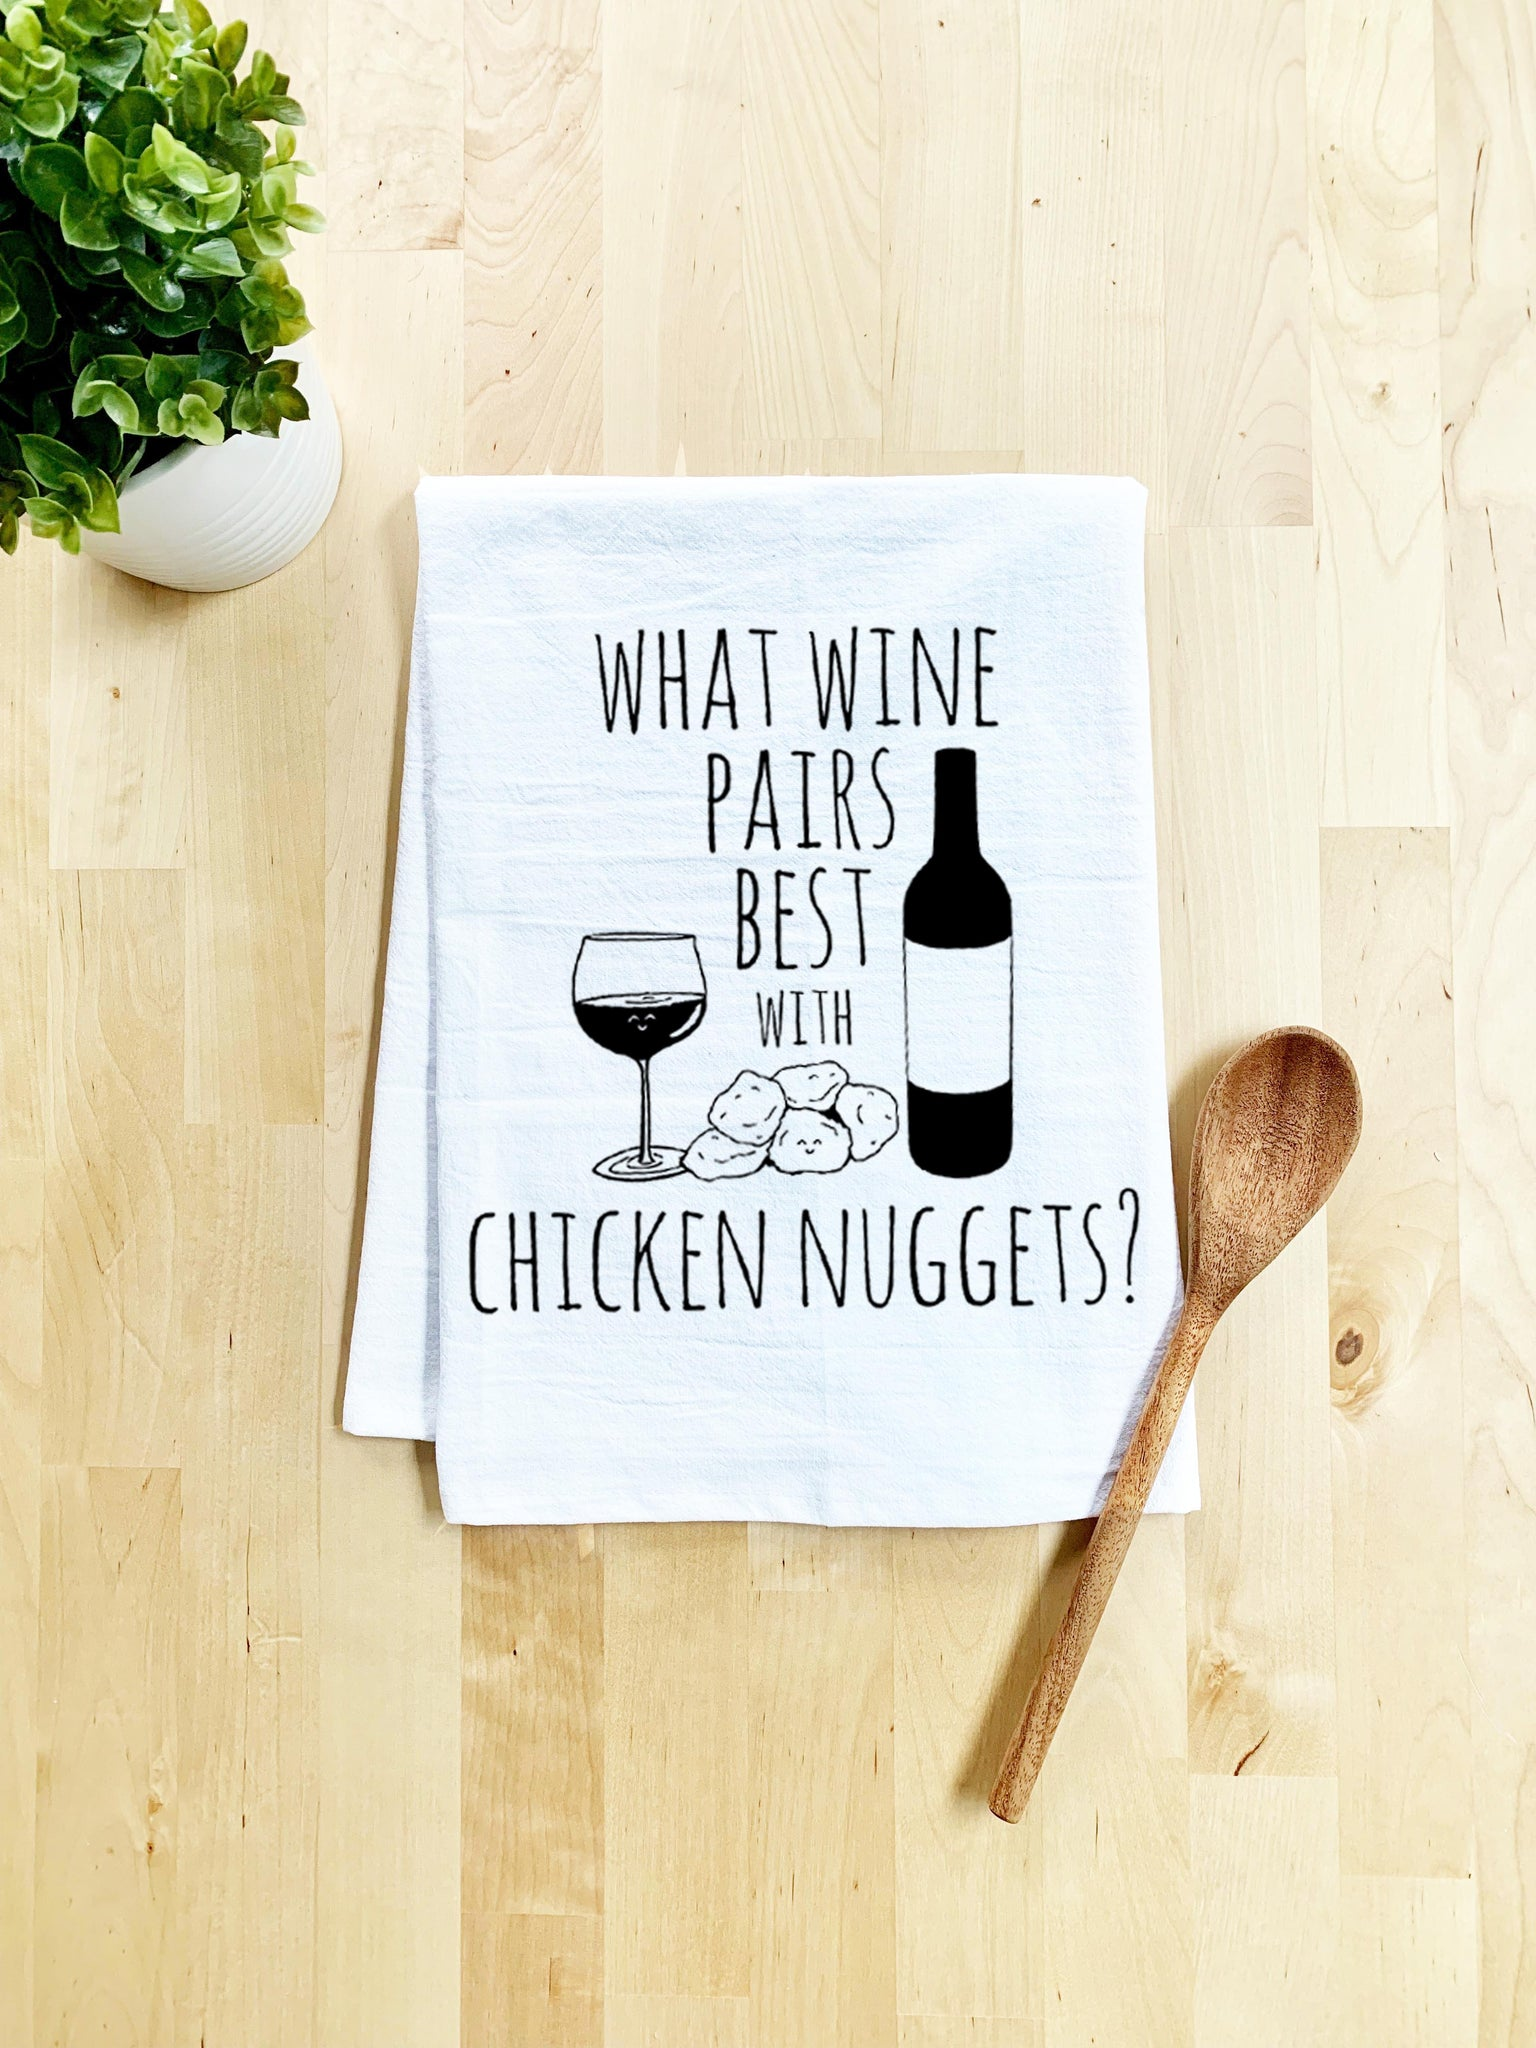 What Wine Pairs Best With Chicken Nuggets Dish Towel - White Or Gray - MoonlightMakers